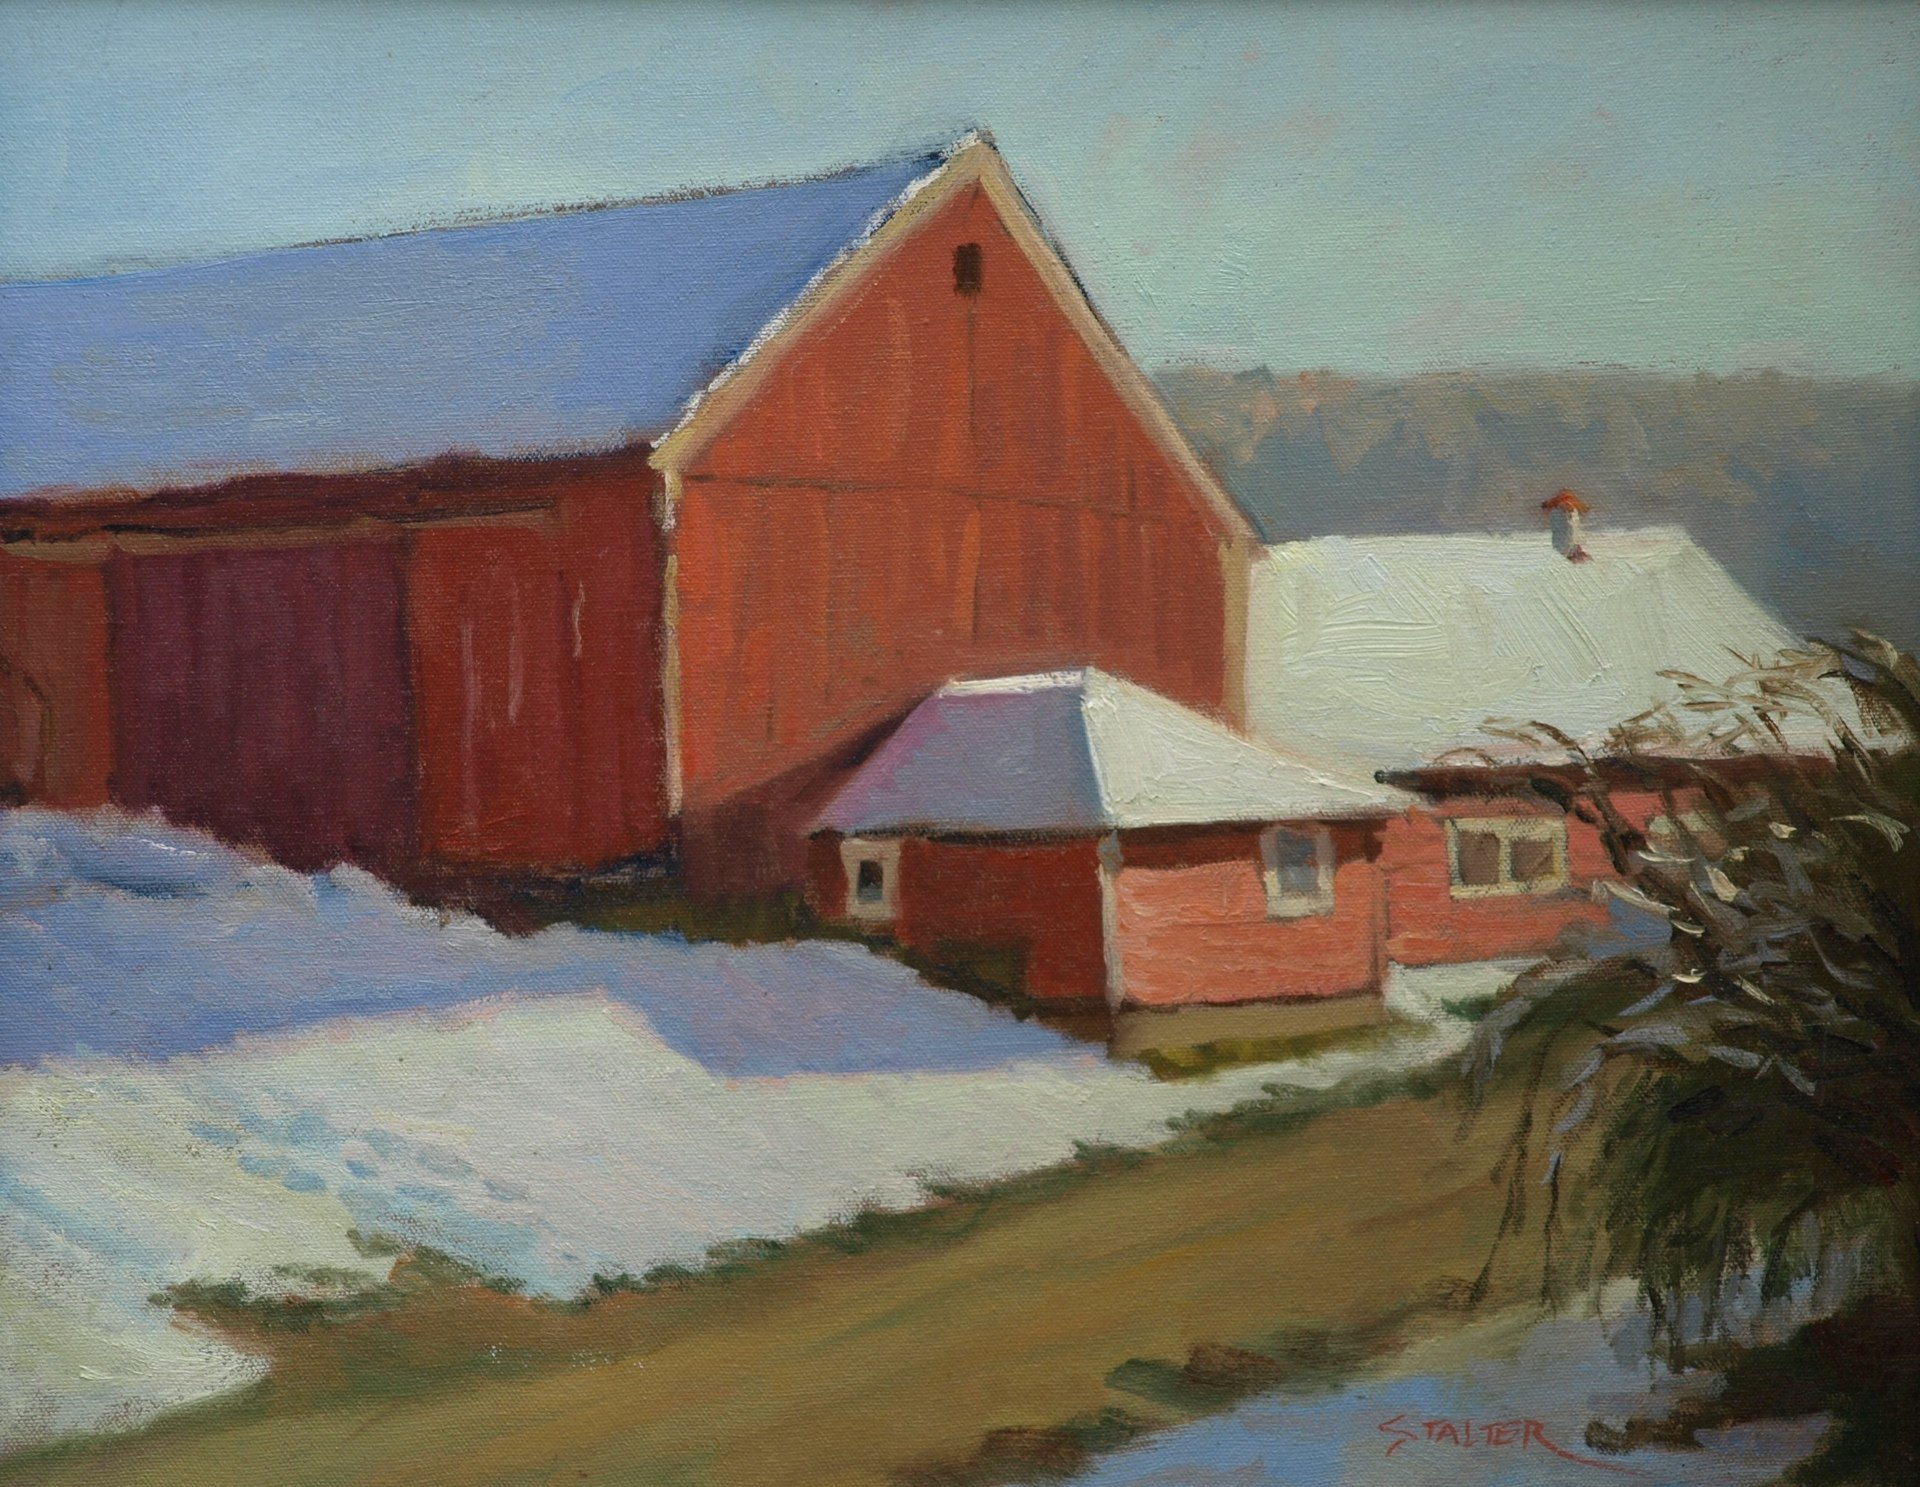 Newton's Barns in Snow, Oil on Canvas, 16 x 20 Inches, by Richard Stalter, $400